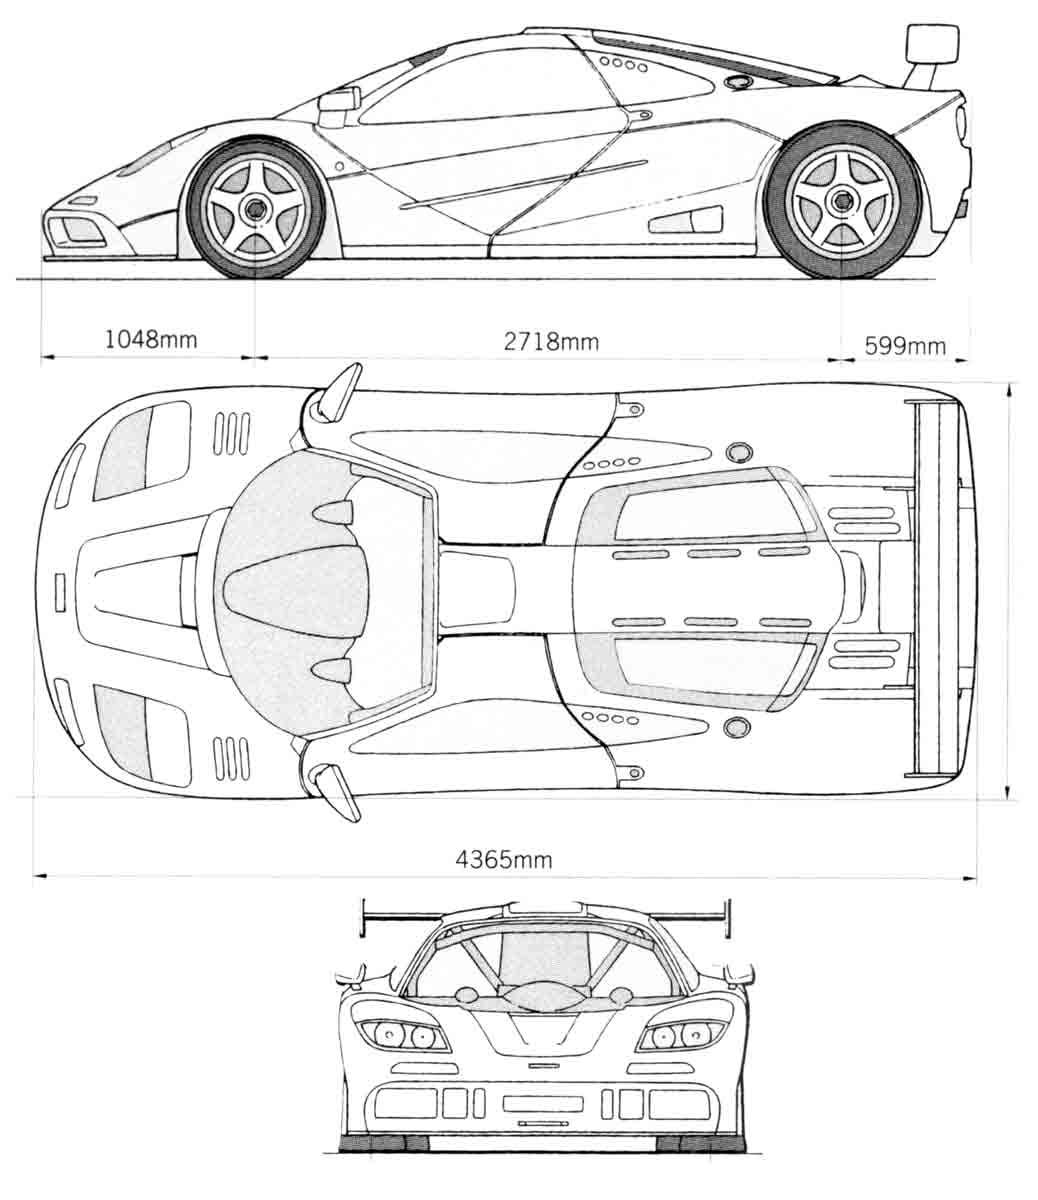 Car Blueprint | Blueprints - Cars | Pinterest | Cars and Vehicle